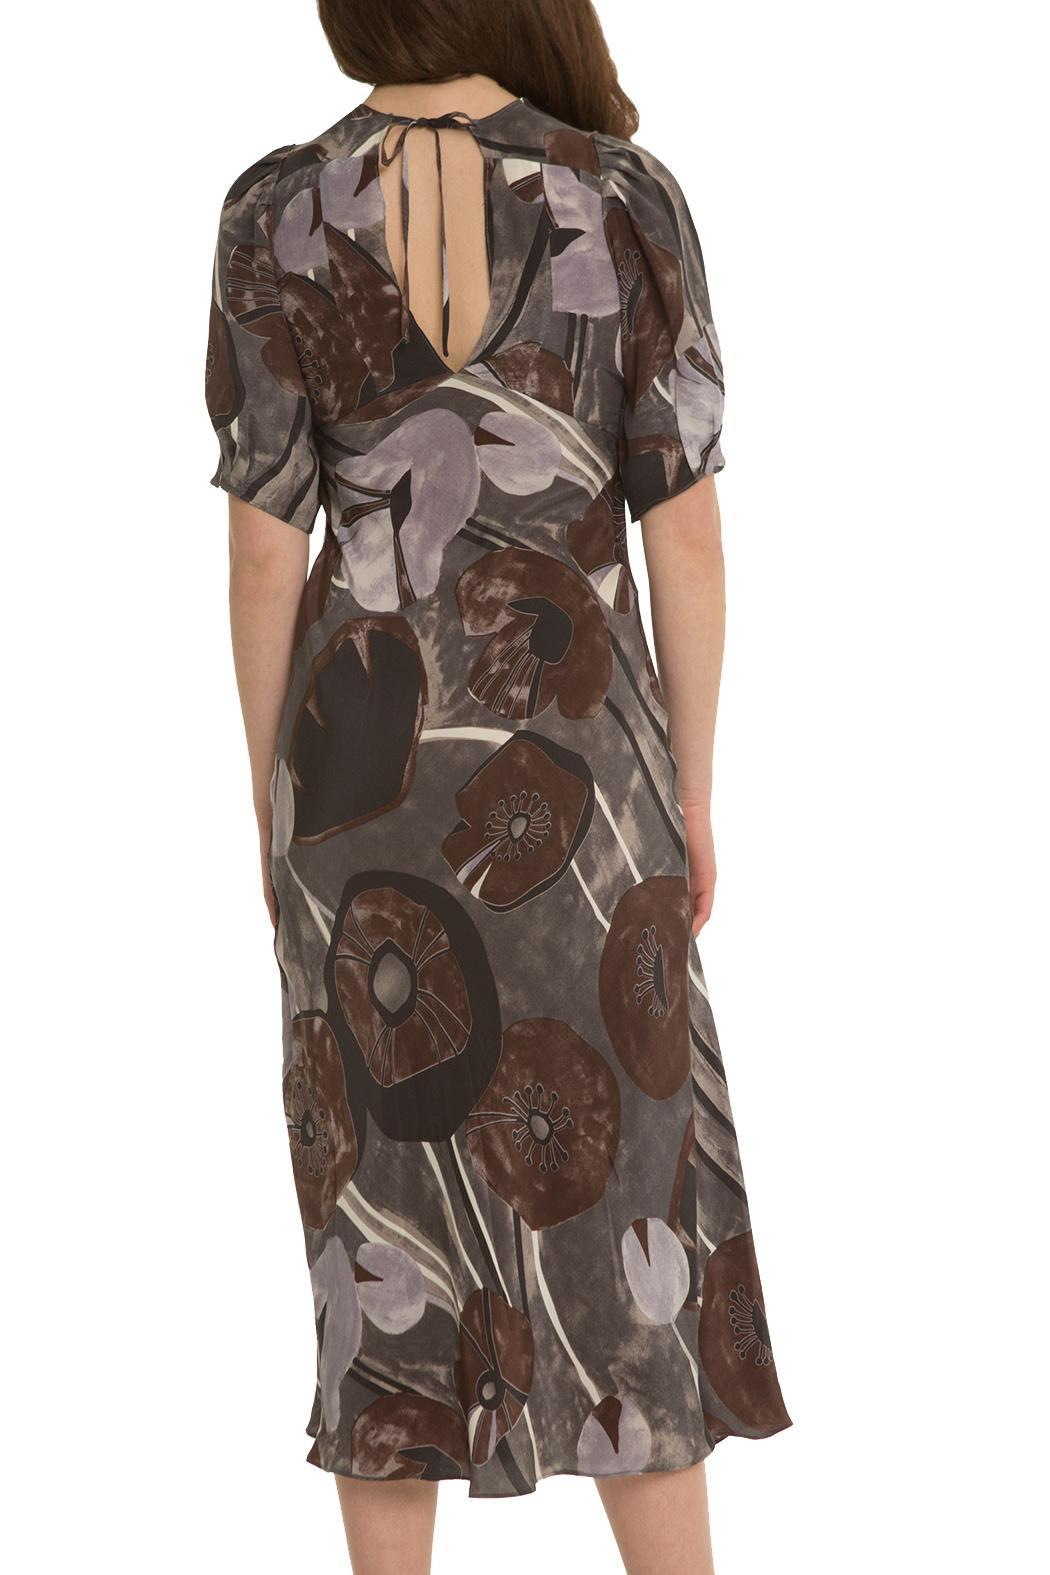 OHLENDORF atelier Silk Floral Dress - Side Cropped Image